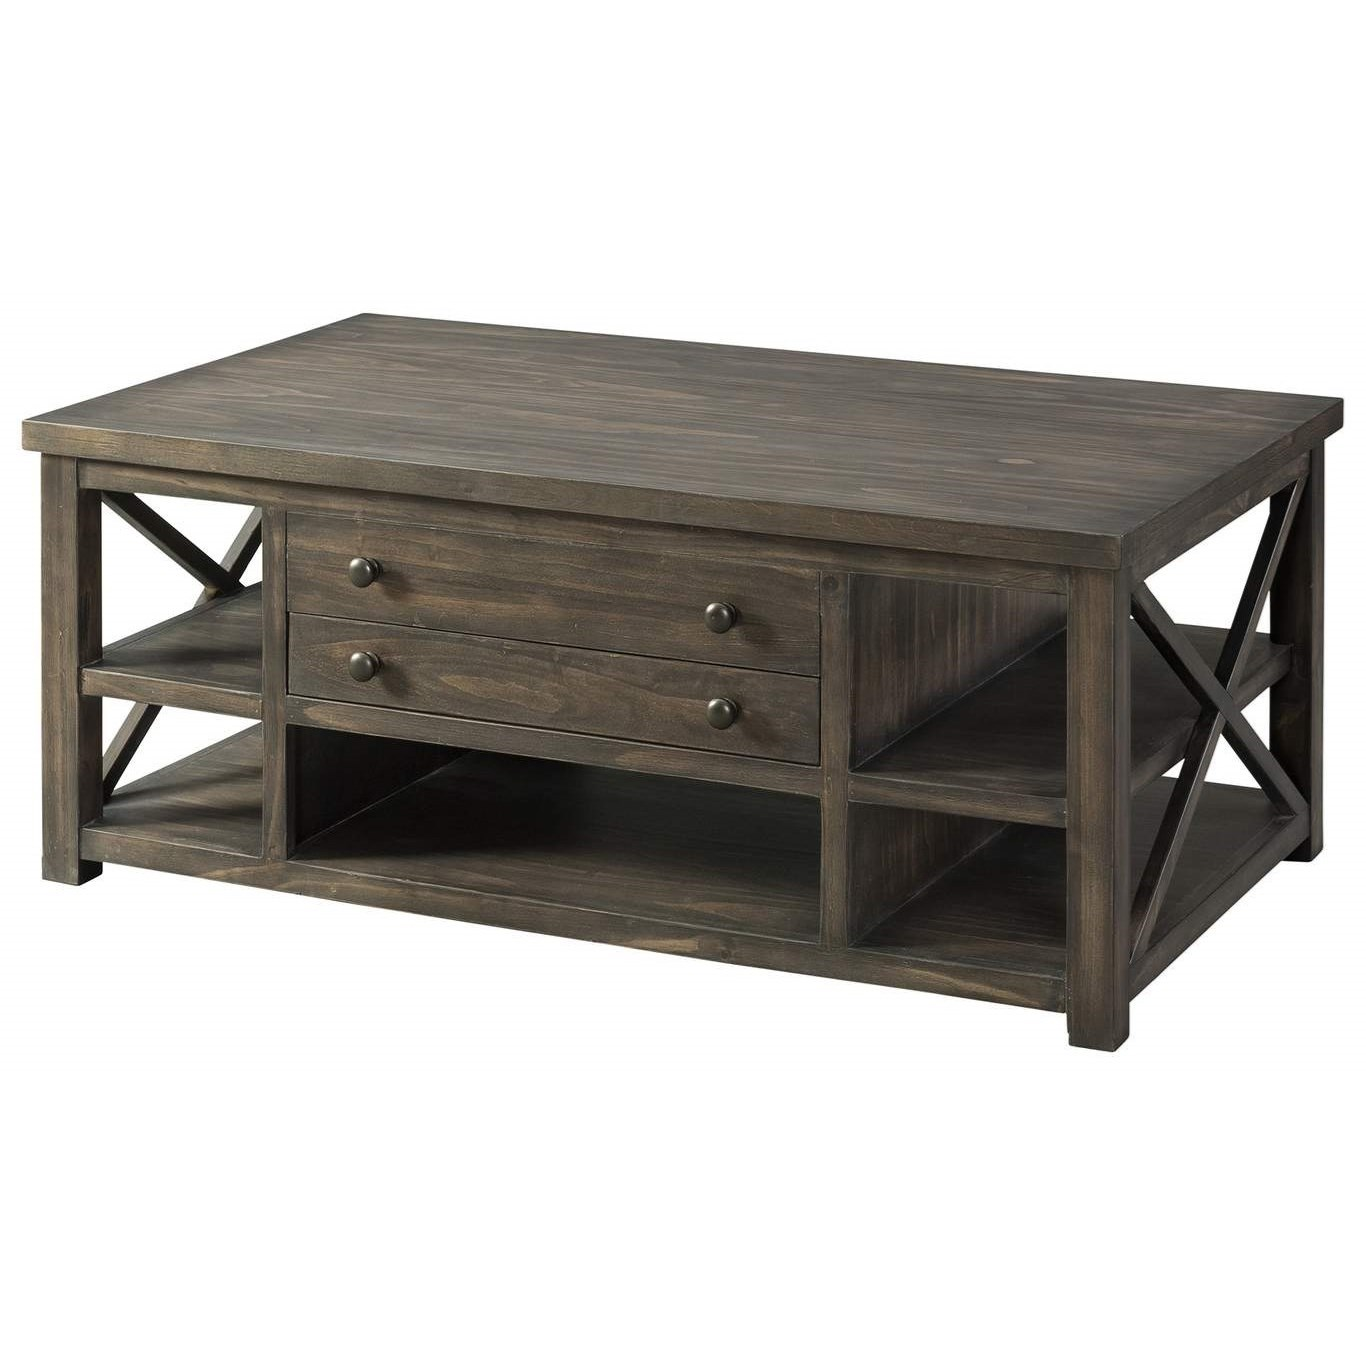 7607 Cocktail Table by Lane at Esprit Decor Home Furnishings